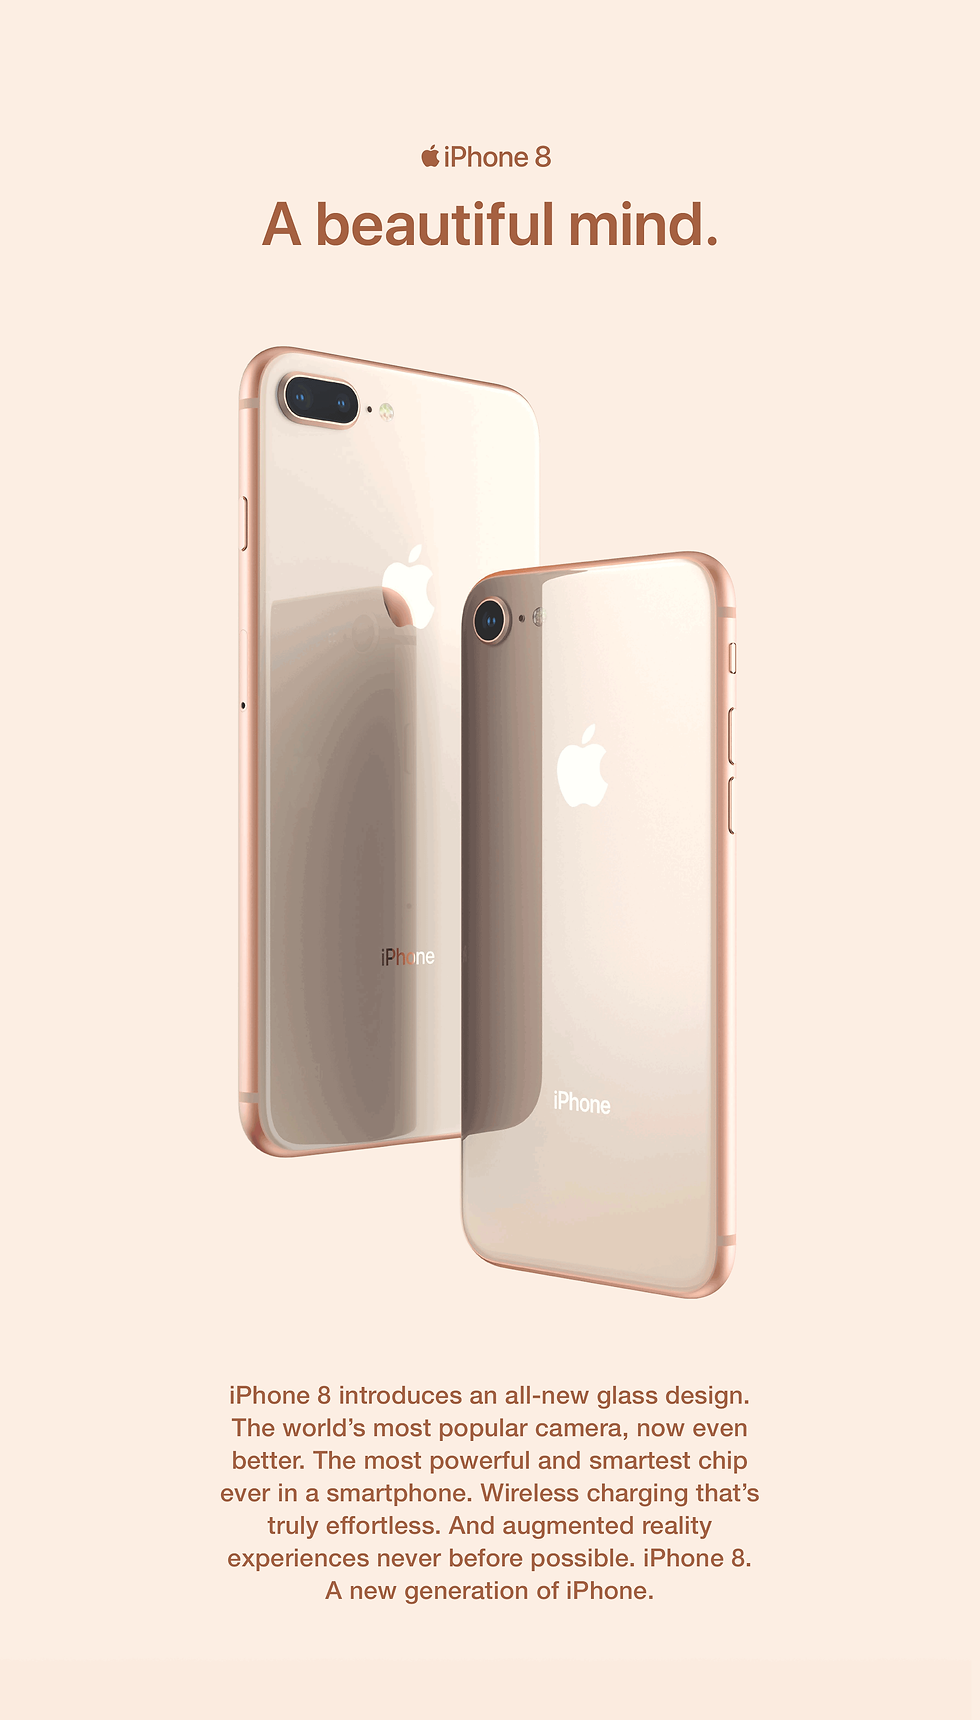 iphone8hero.png